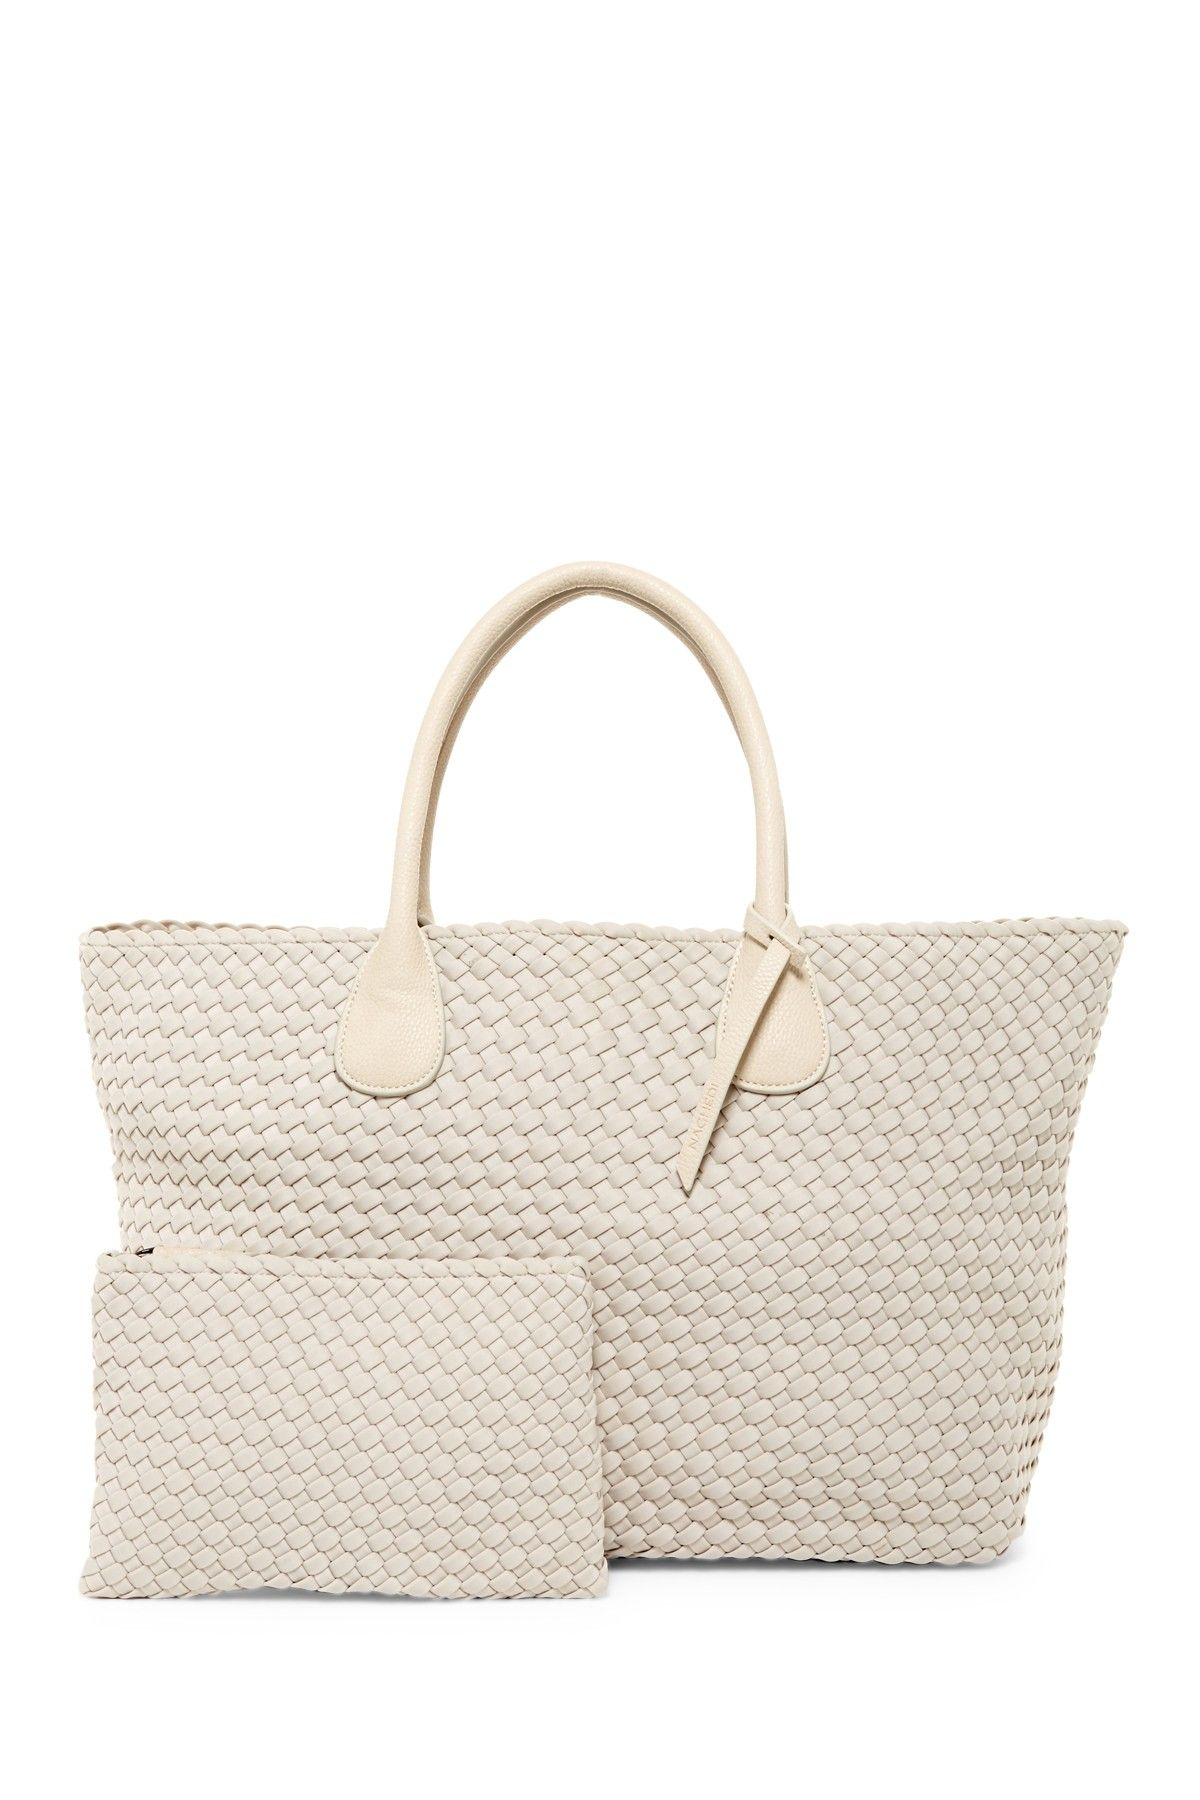 96d9150aad2ea3 Naghedi | Kensington Large Tote | heavenly or hellish handbags ...